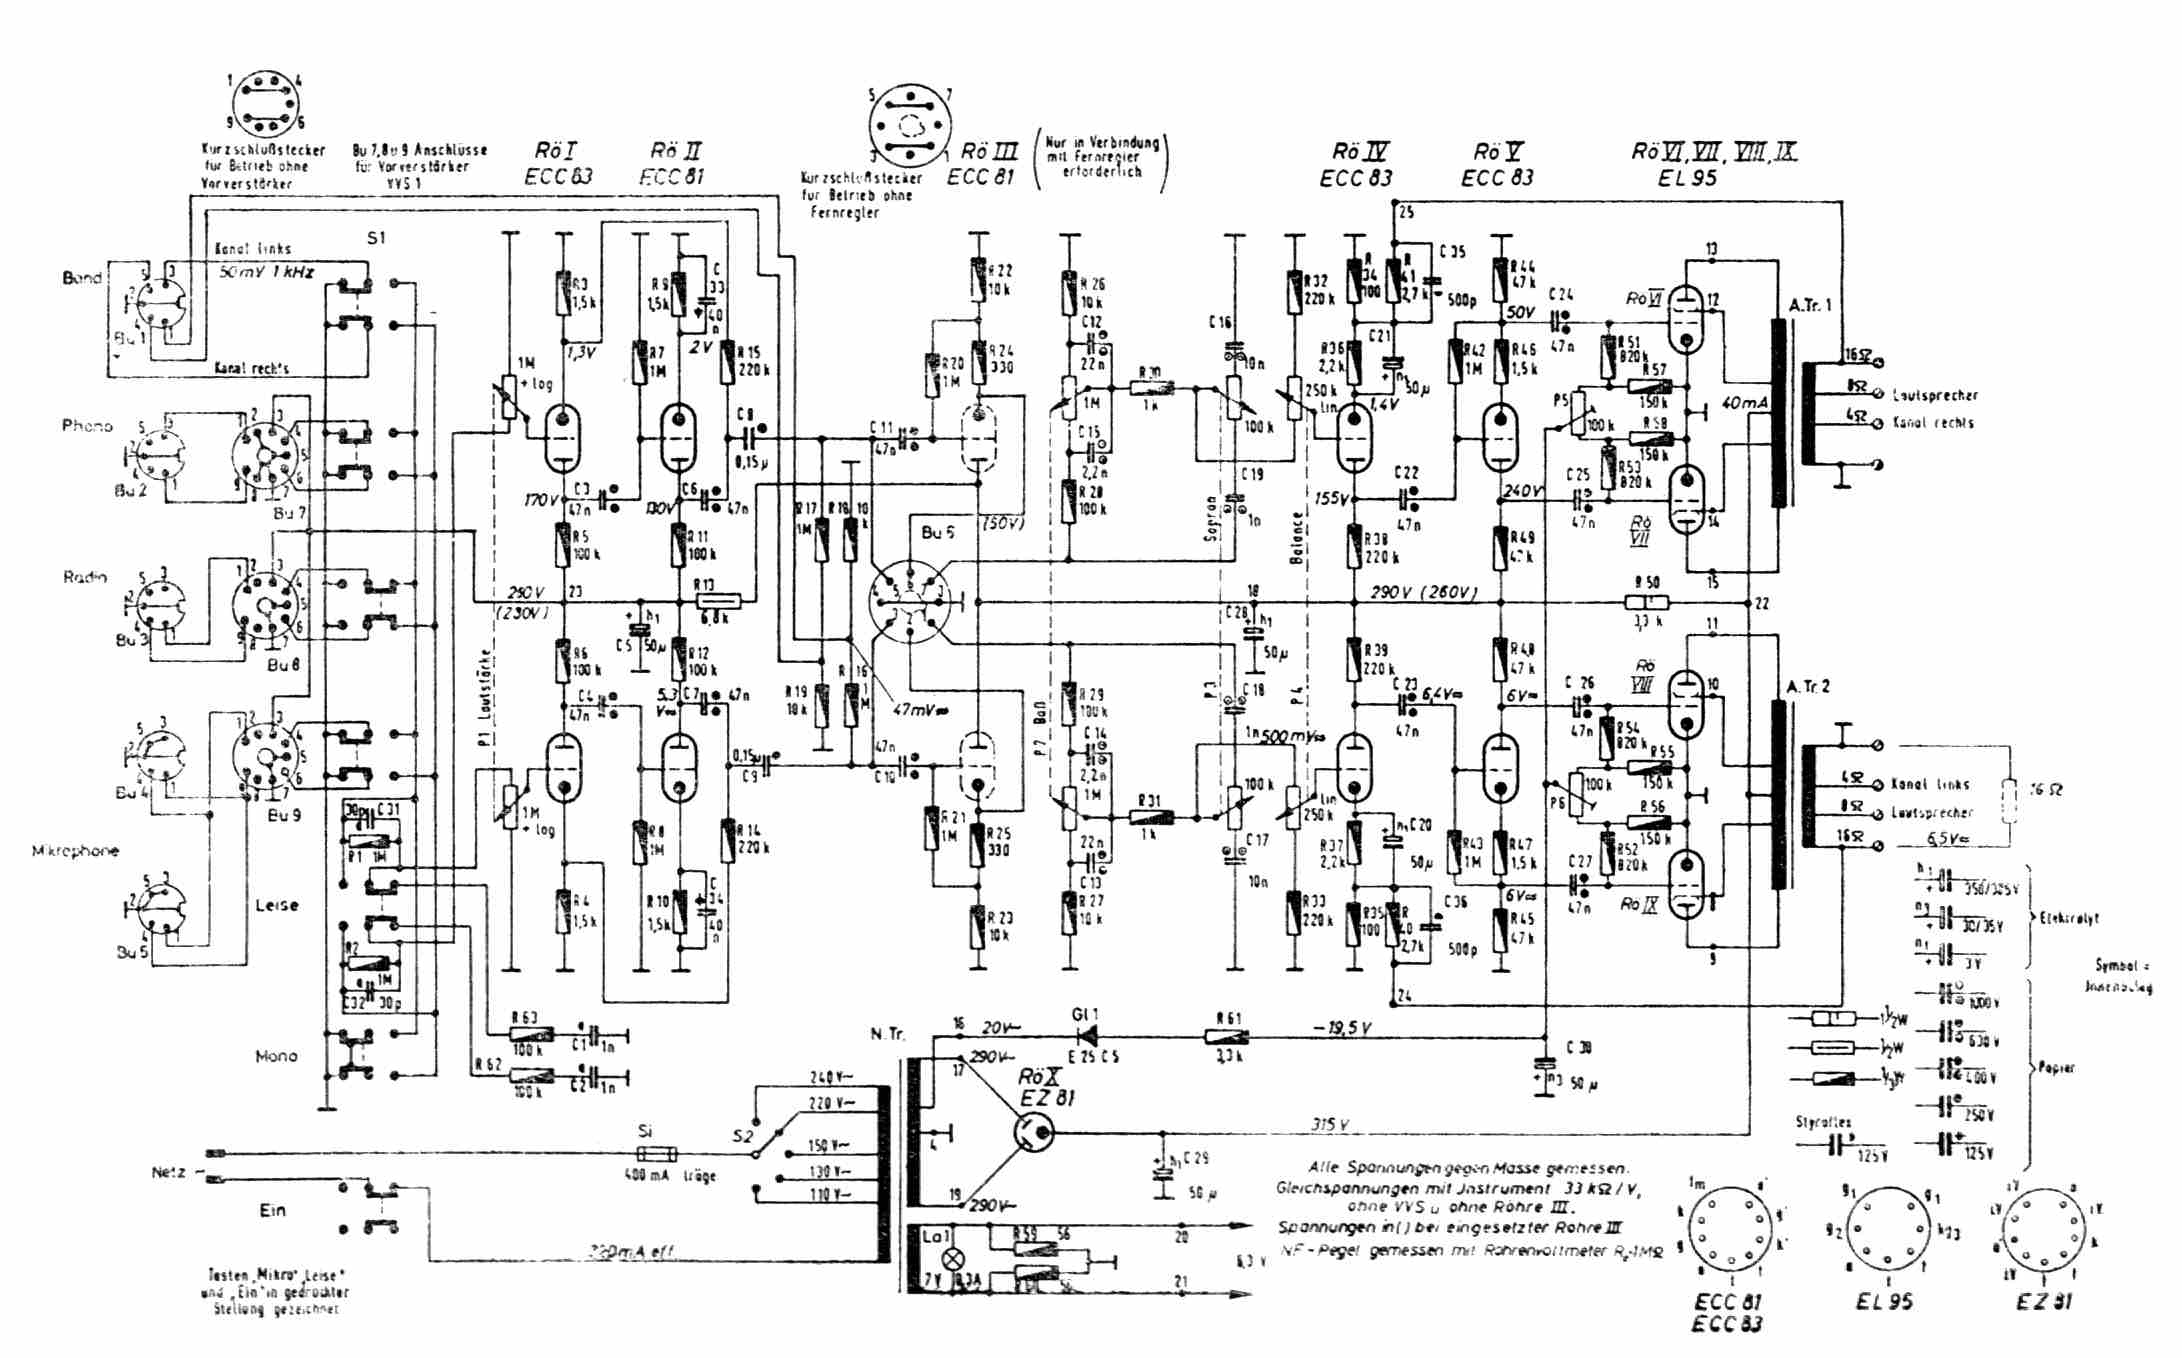 Diy Audio Amplifier Schematics Trusted Wiring Diagrams Pass Labs Aleph5 Classa Schematic Pcb Old Tube Amp Diagram For Light Switch U2022 Circuit